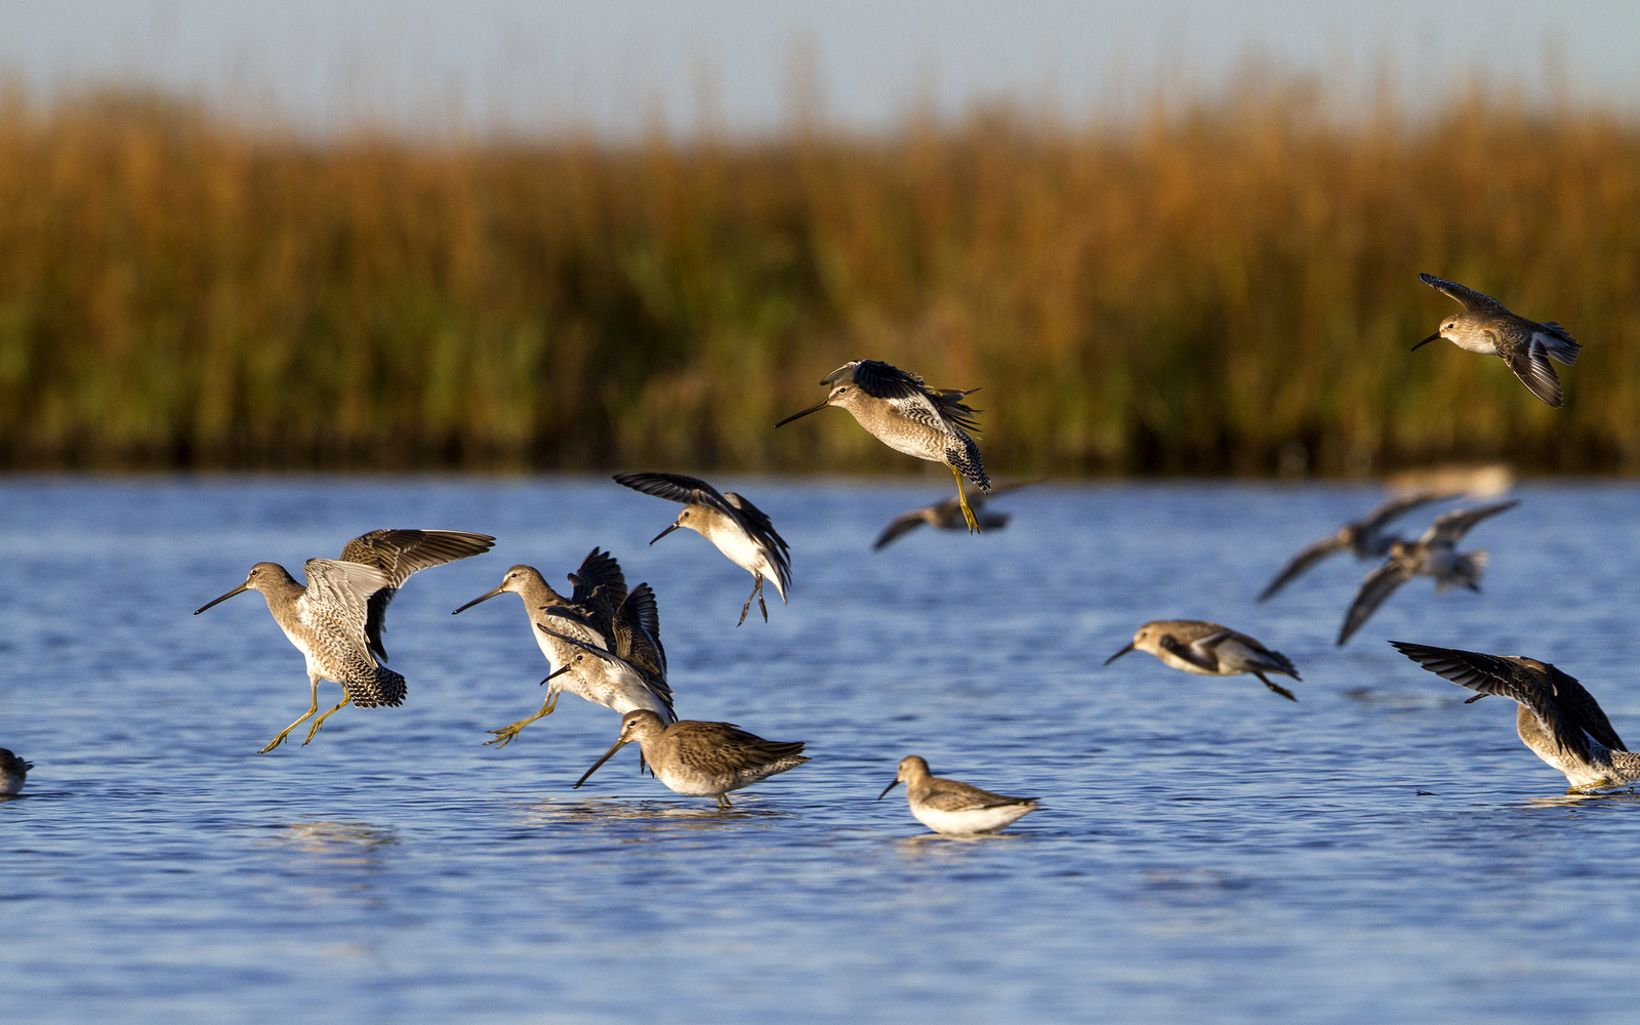 The Mad Island Marsh Preserve protects 7,063 acres, including rare tallgrass coastal prairies.